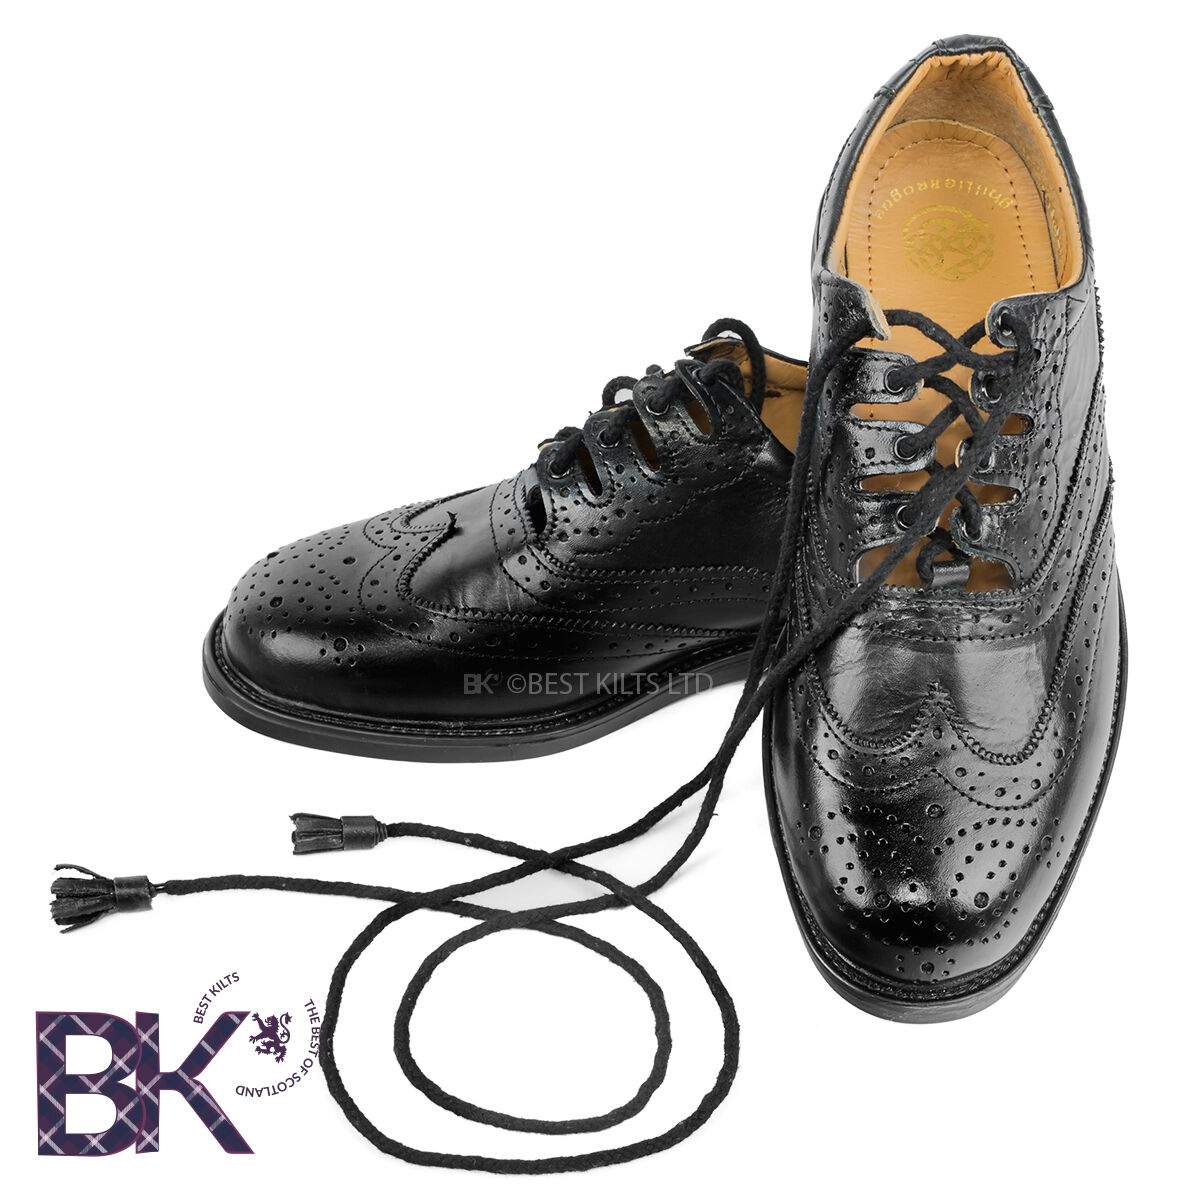 Mens Scottish Leather Ghillie Brogues, kilt schuhe Größes 7  - 12  + Kilt Socks